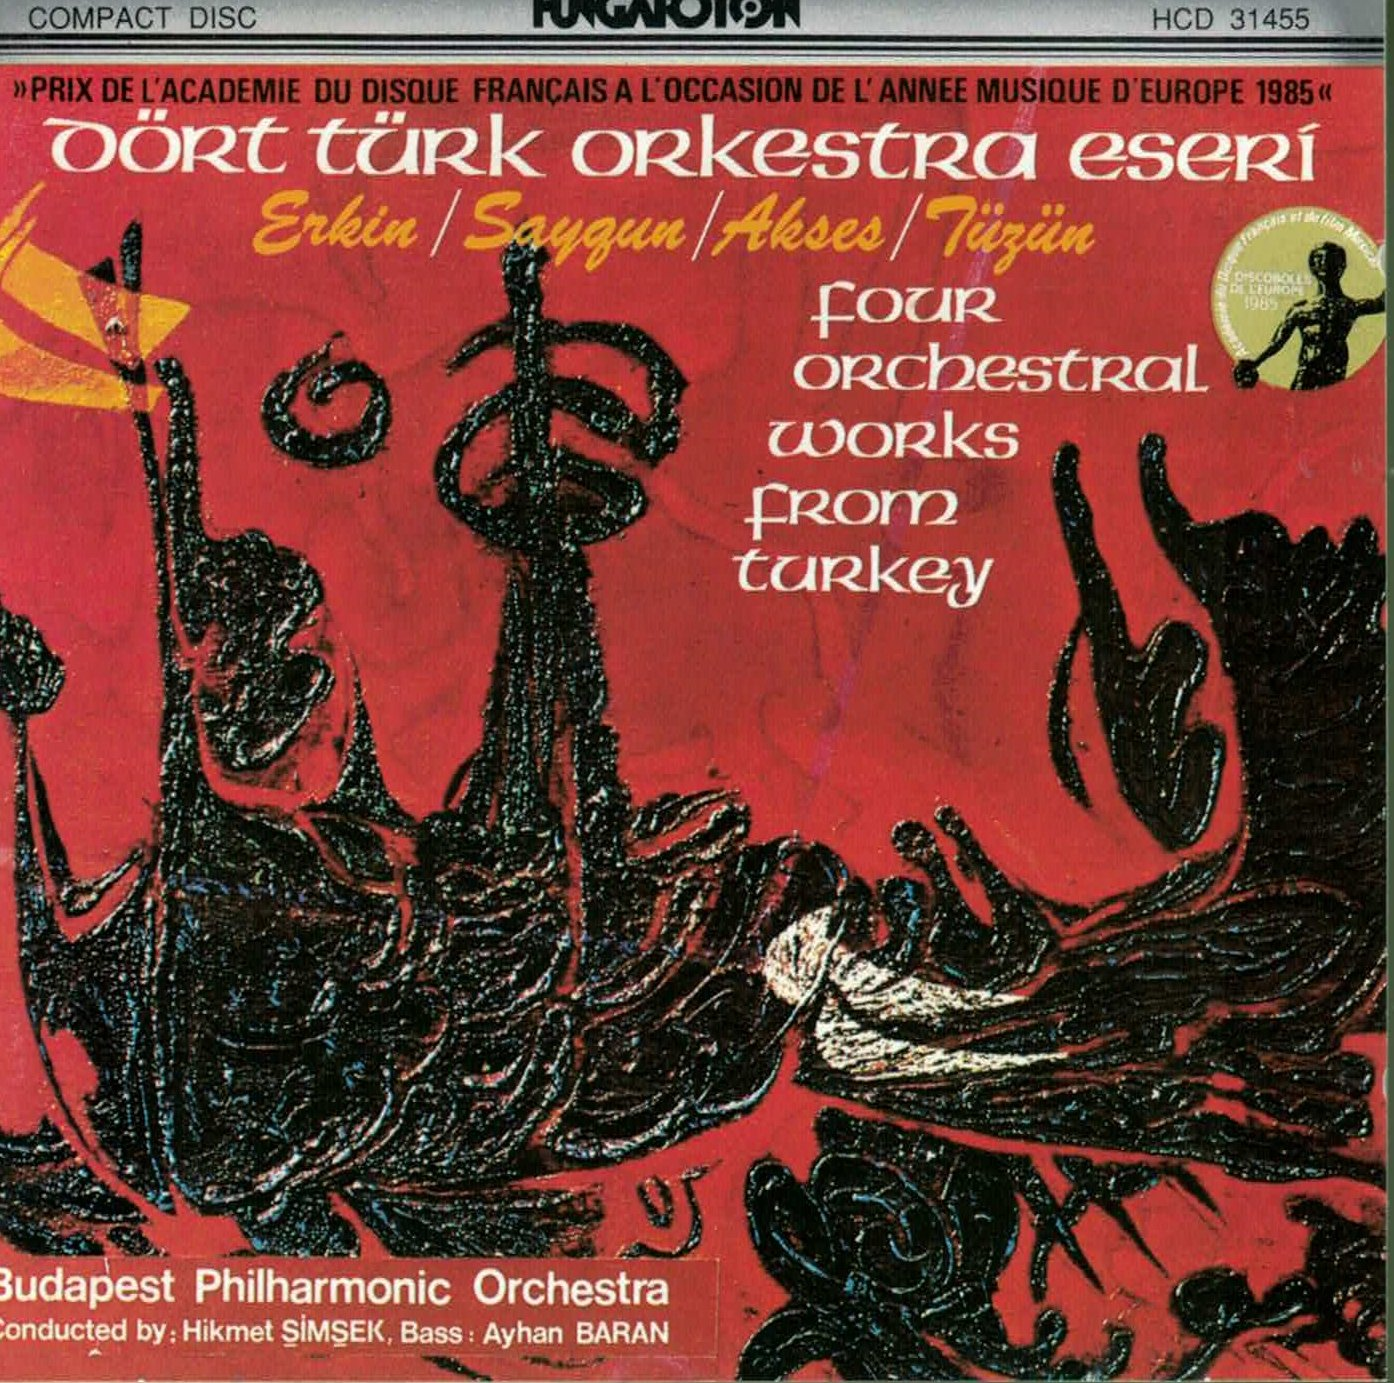 ... Hikmet Simsek, Ayhan Baran, Budapest Philharmonic Orchestra - Turkish Orchestral  Works - Four Orchestral Works from Turkey - Amazon.com Music